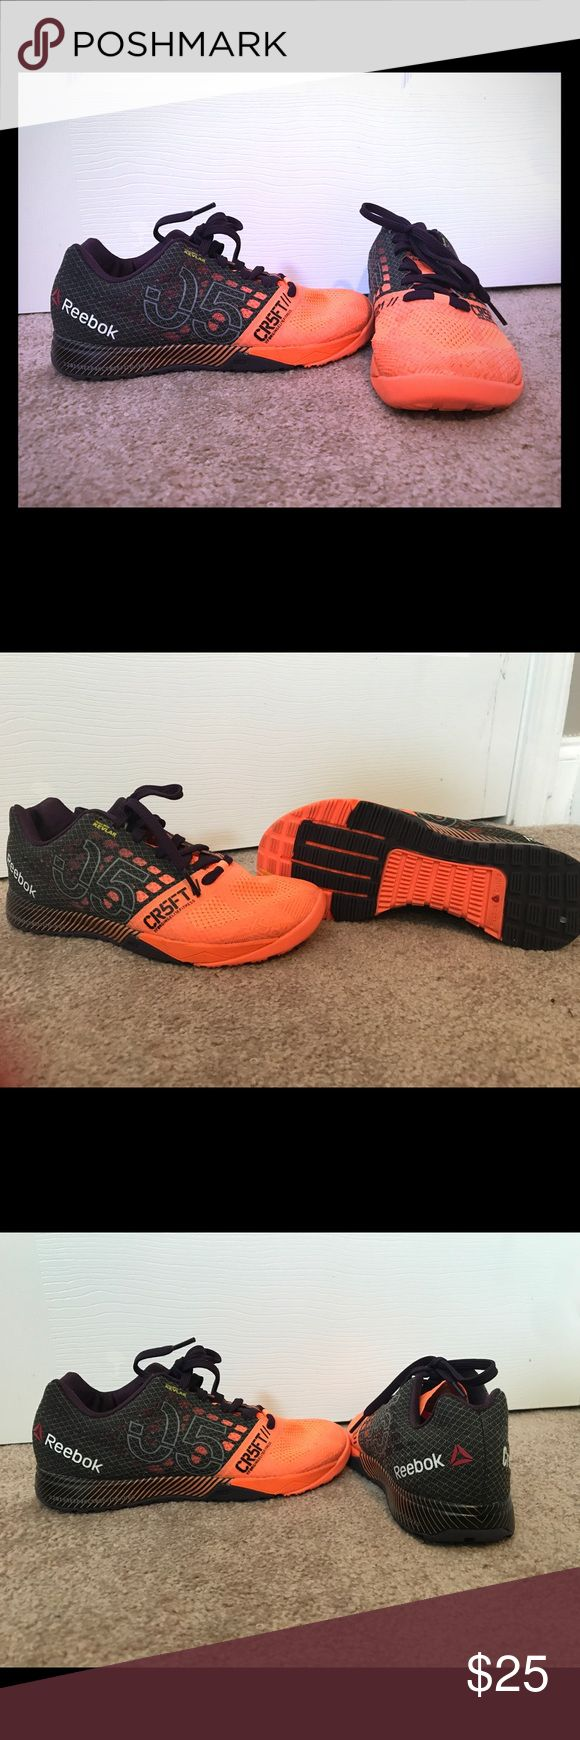 Size 6.5 Official Reebok Crossfit Games shoes Size 6.5 true to size, orange and charcoal with purple laces. Extra set of orange laces included. Official 2015 Crossfit Games edition. Reebok Shoes Sneakers